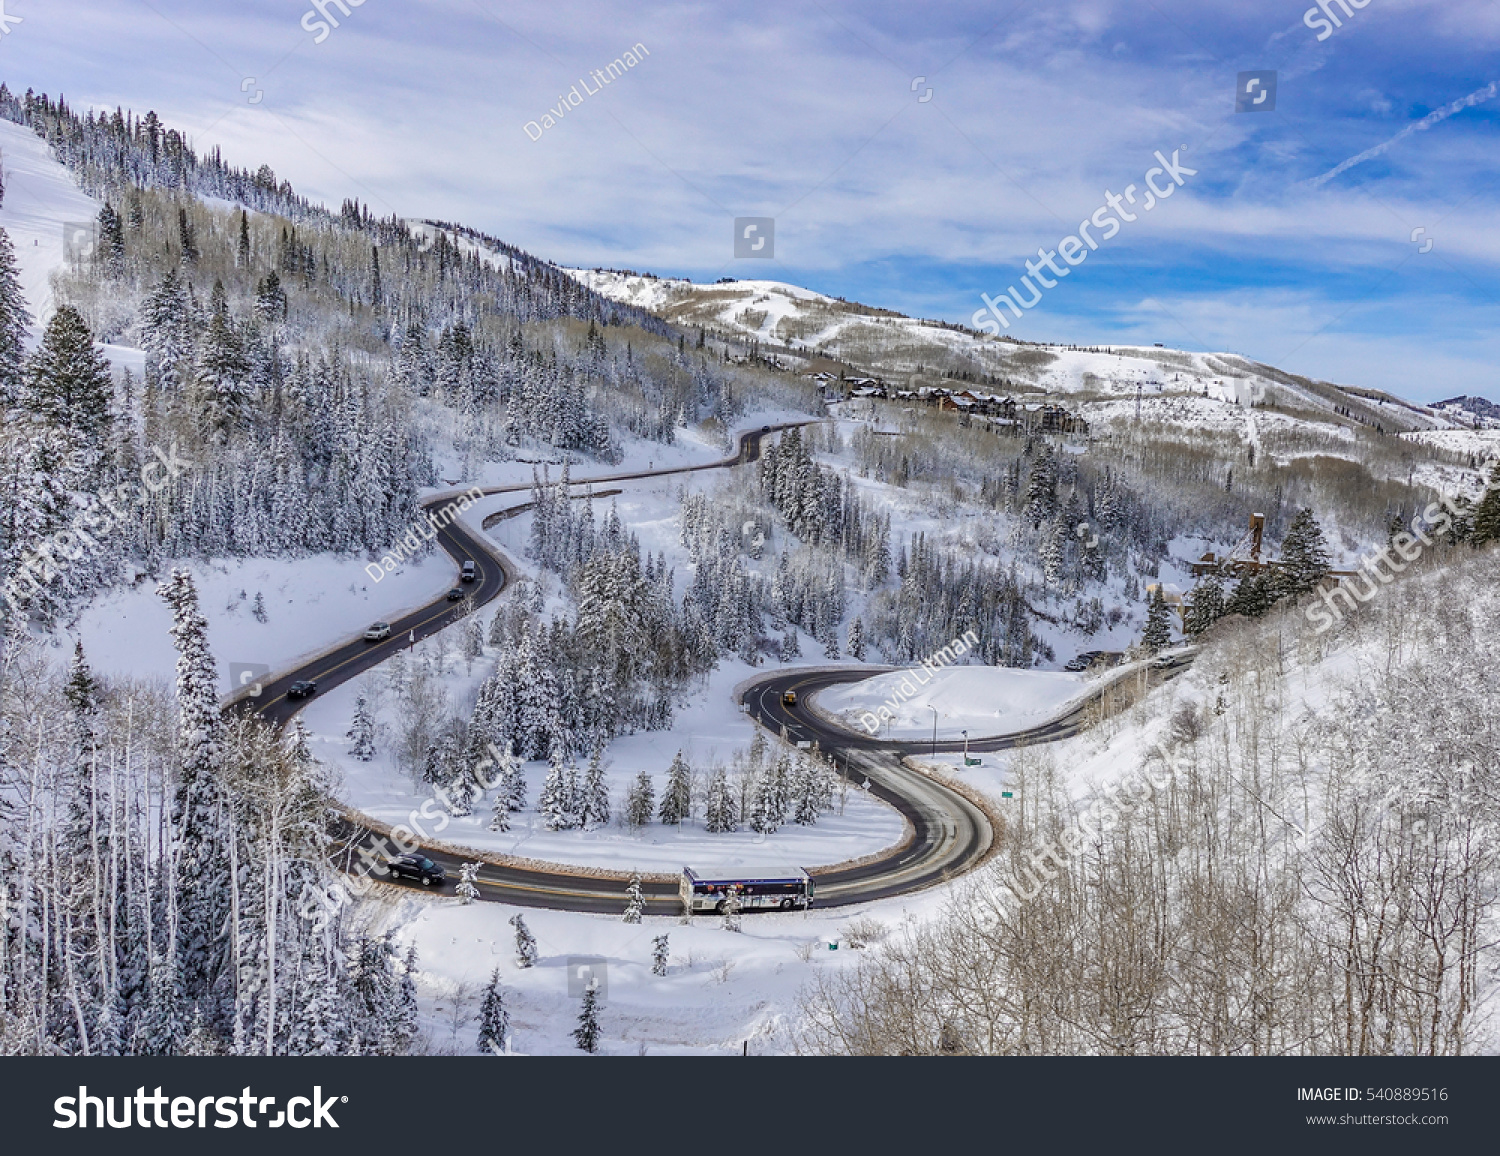 Mountain winter: The winding road to the Deer Valley Ski Resort,  host site of 2002 Winter Olympics, near Park City and The Canyons, a short drive from Salt Lake City, Utah,  with snow covered trees.